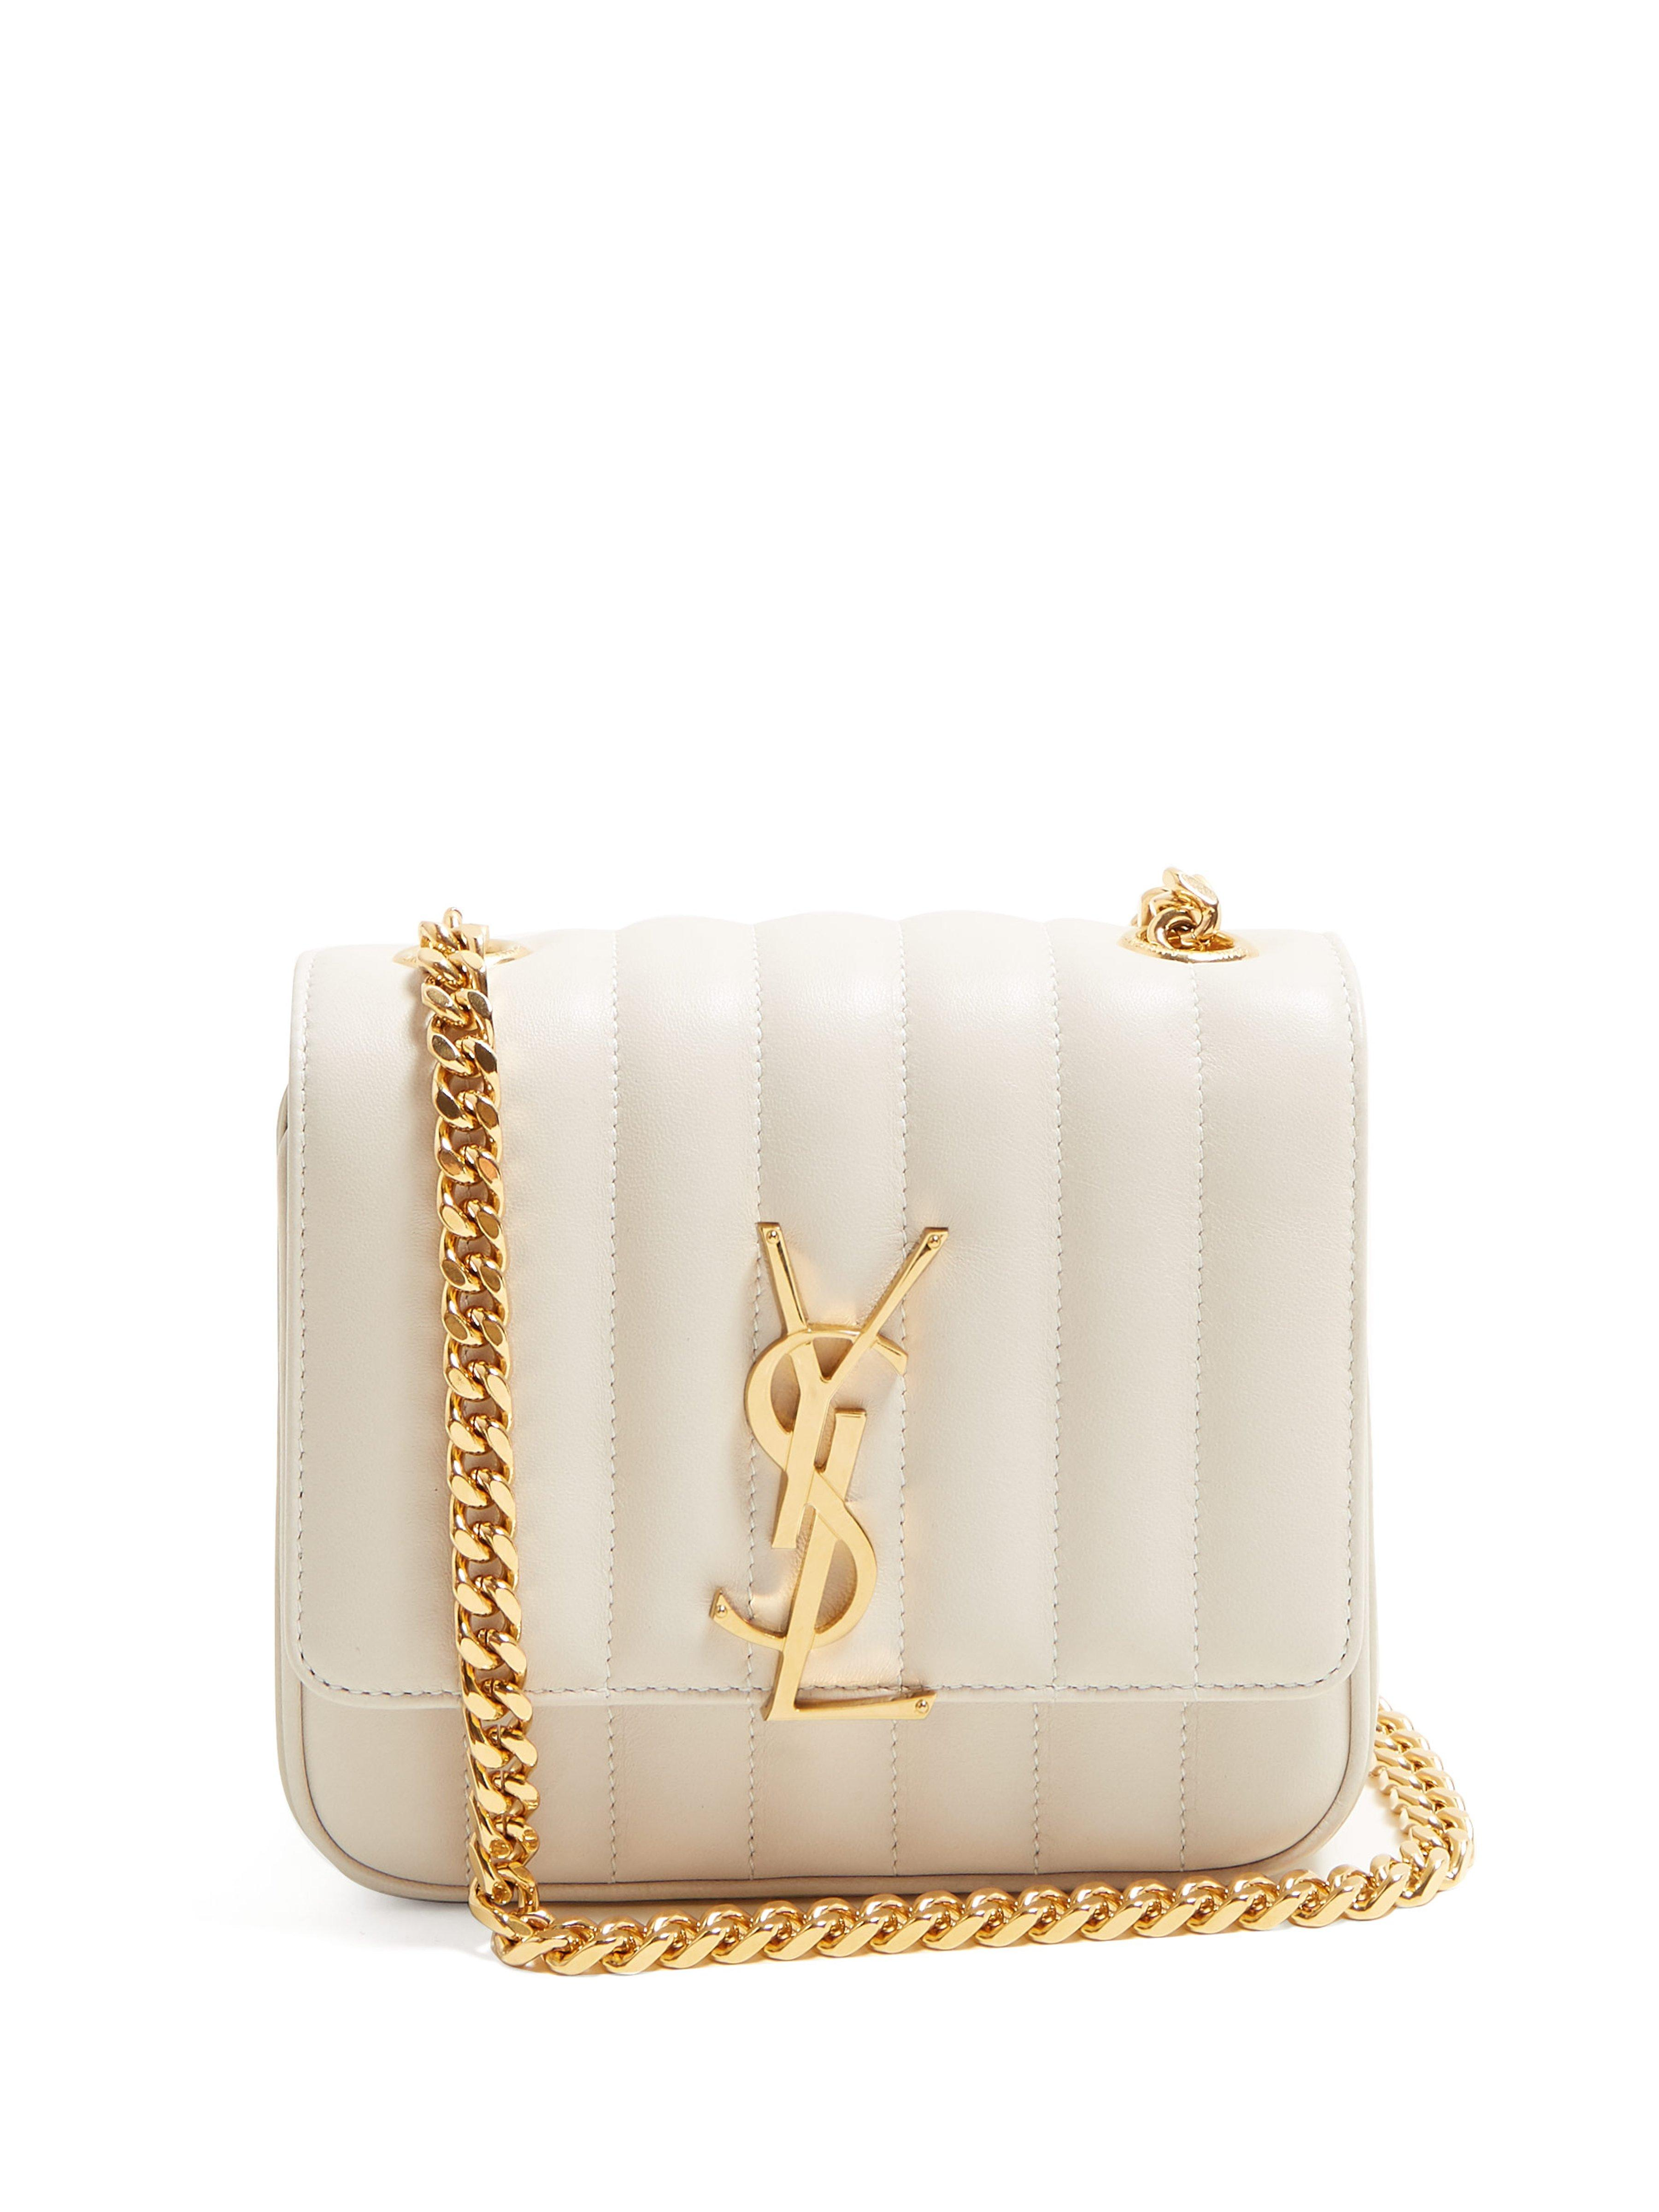 3574c47d1afe Saint Laurent Vicky Small Leather Bag in White - Lyst